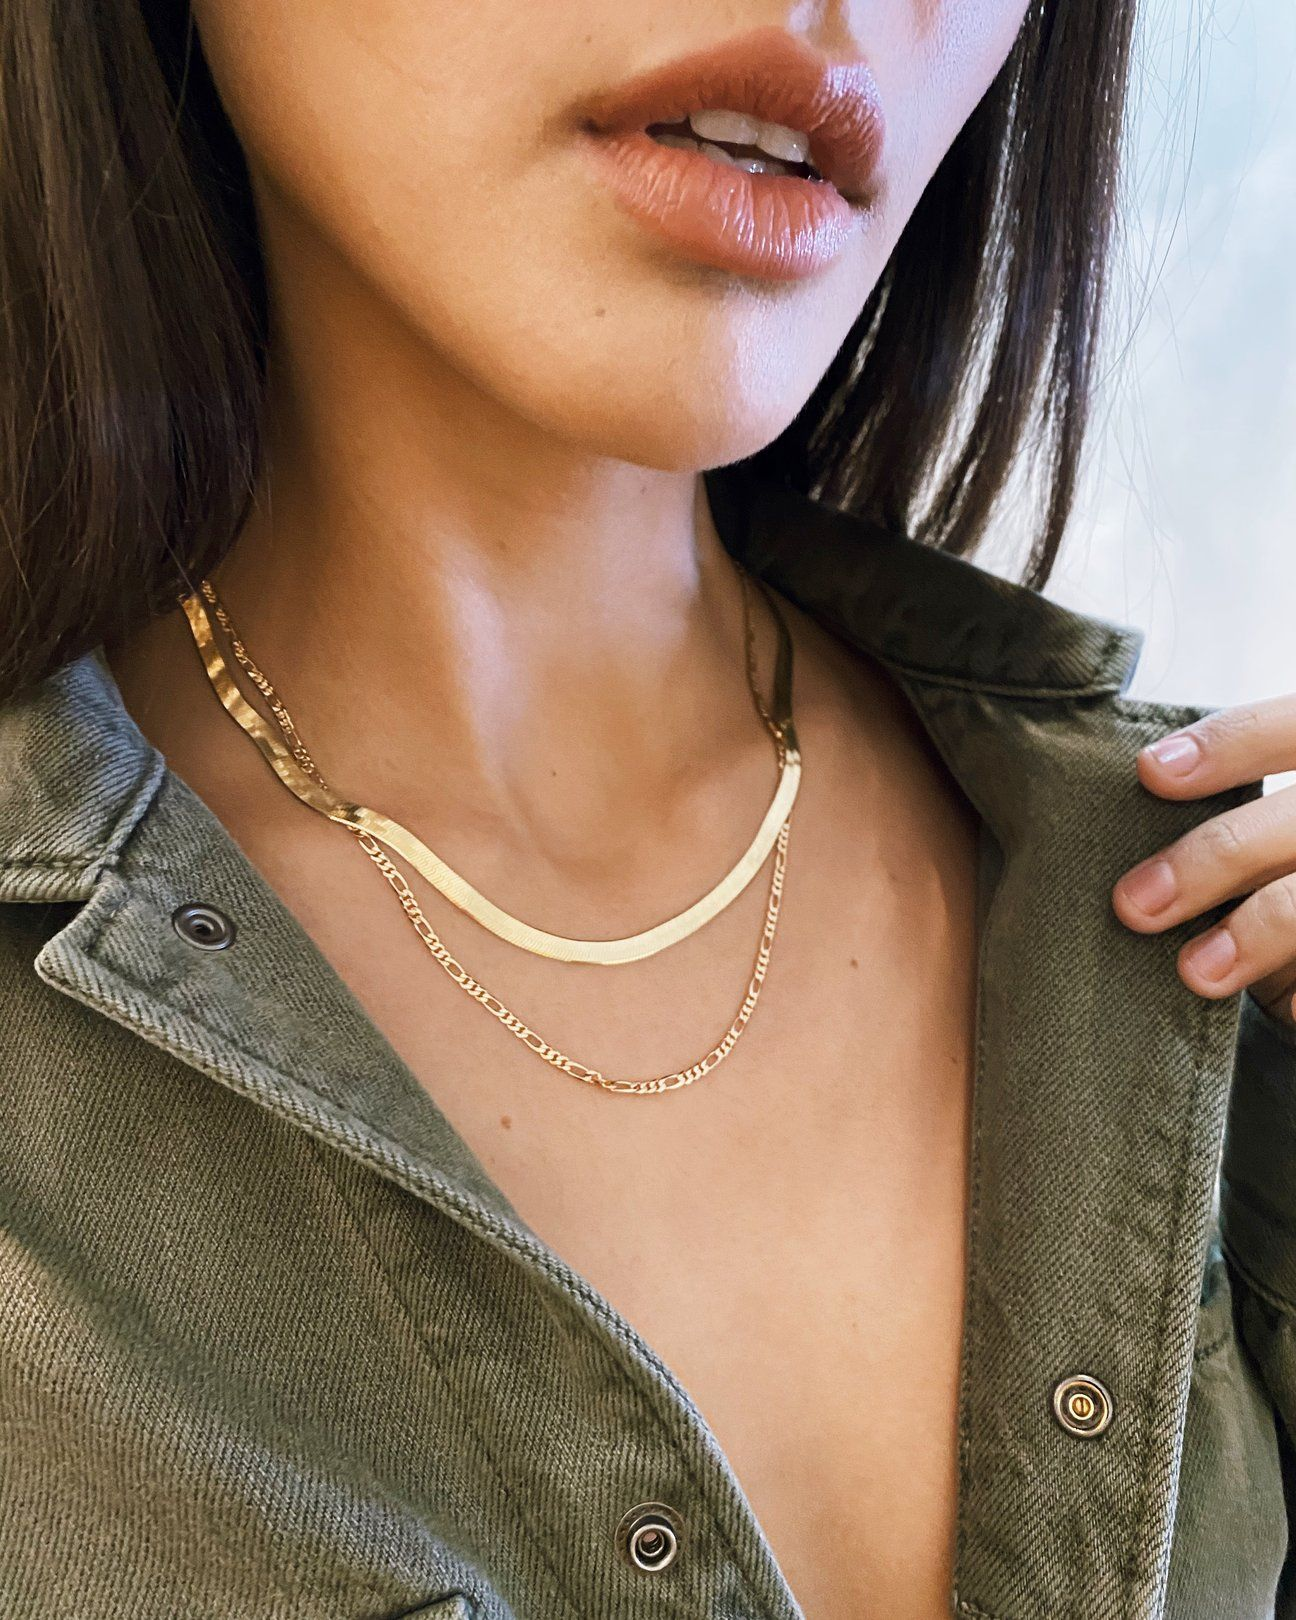 Hayden Chain Necklace 16 Fashion Jewelry Chain Necklace Jewelry